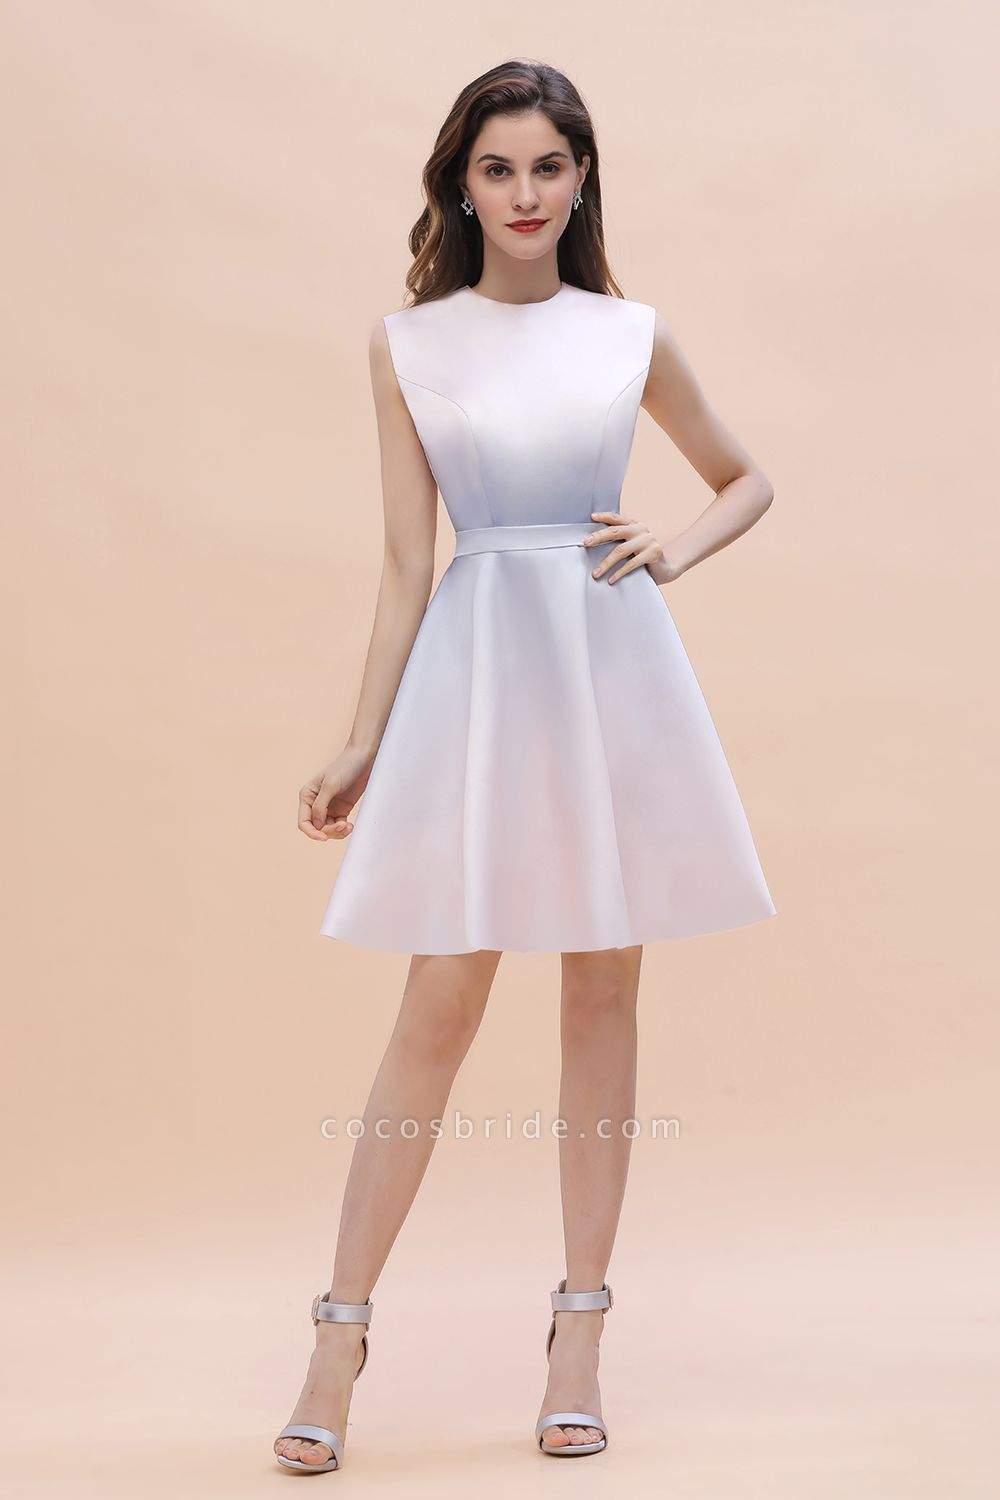 Elegant Gradient A-line Daily Casual Sleeveless Evening Party Dress